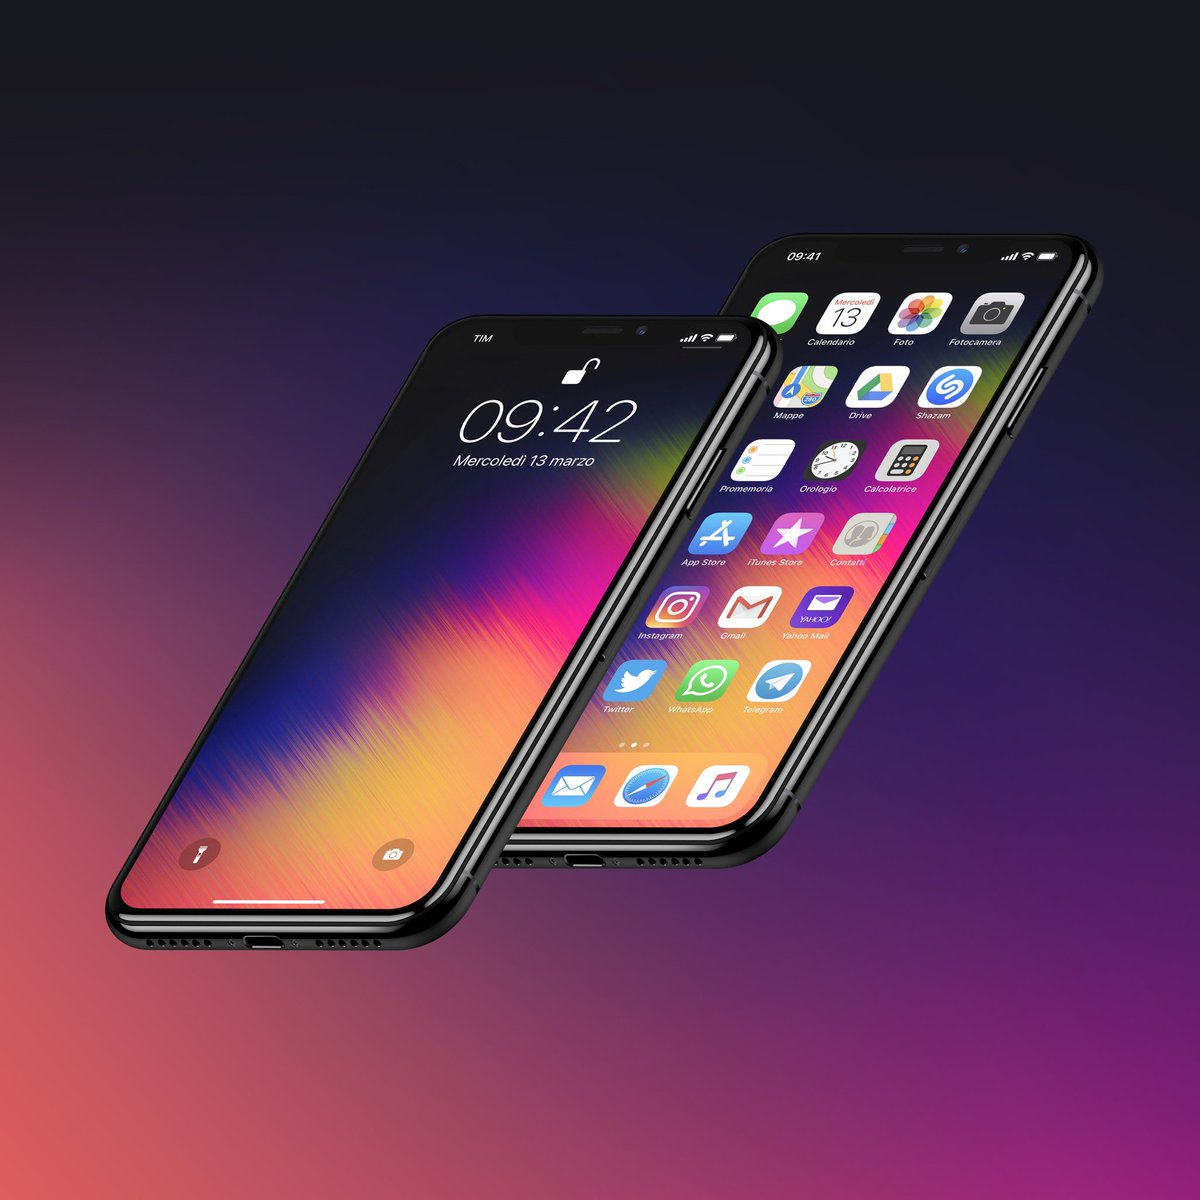 Ar7 On Twitter Wallpapers Iphone Lockscreen And Homescreen